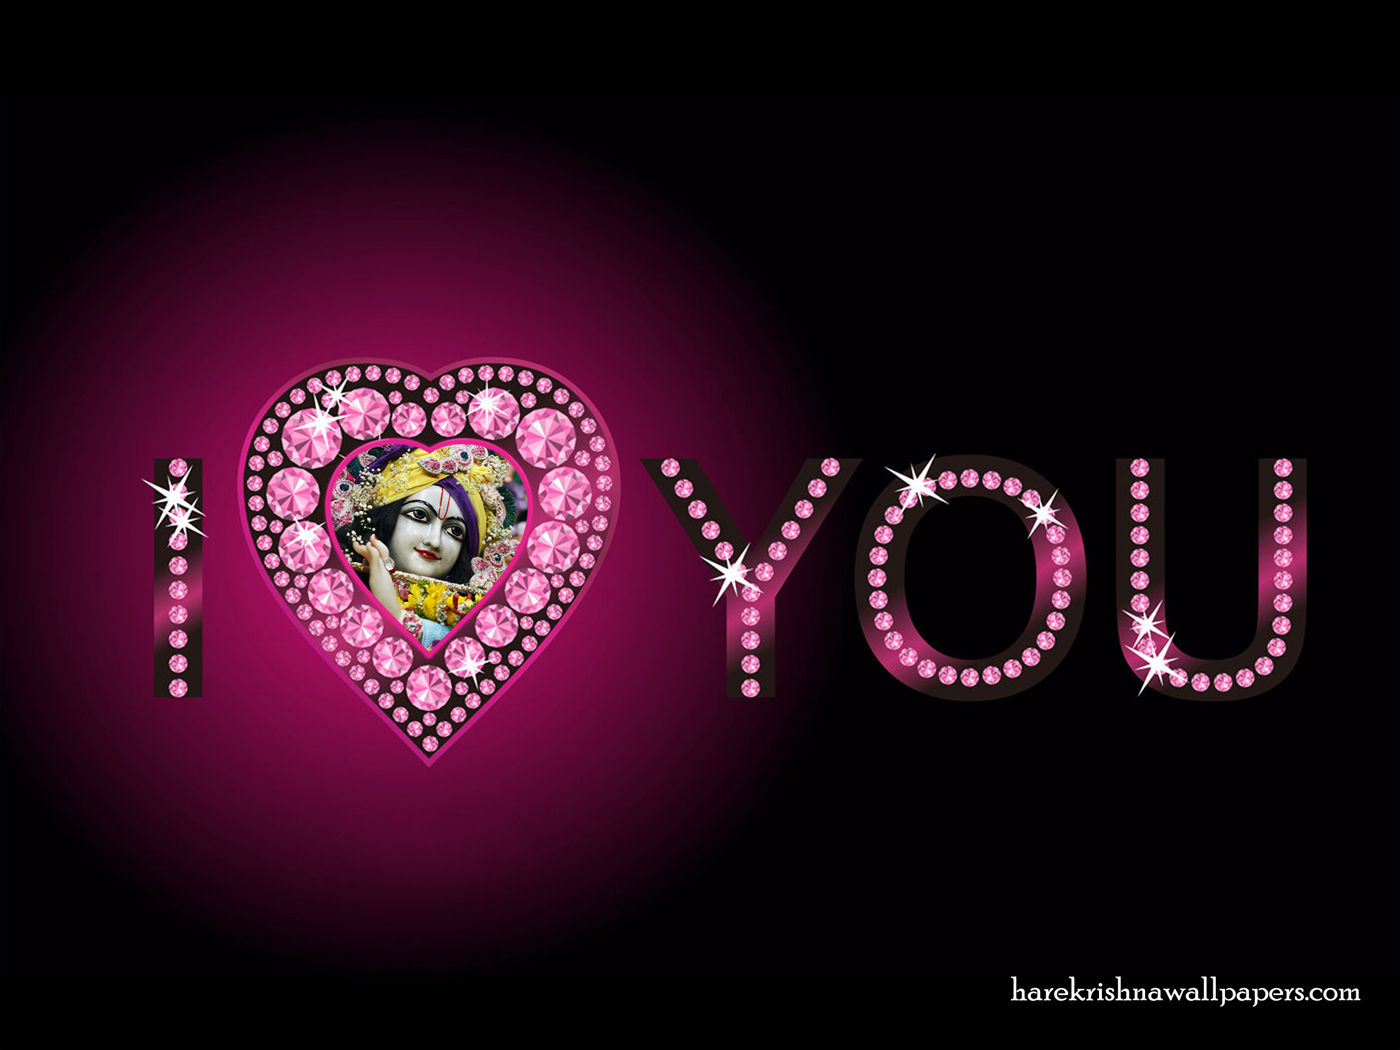 I Love You Gopinath Wallpaper (002) Size 1400x1050 Download